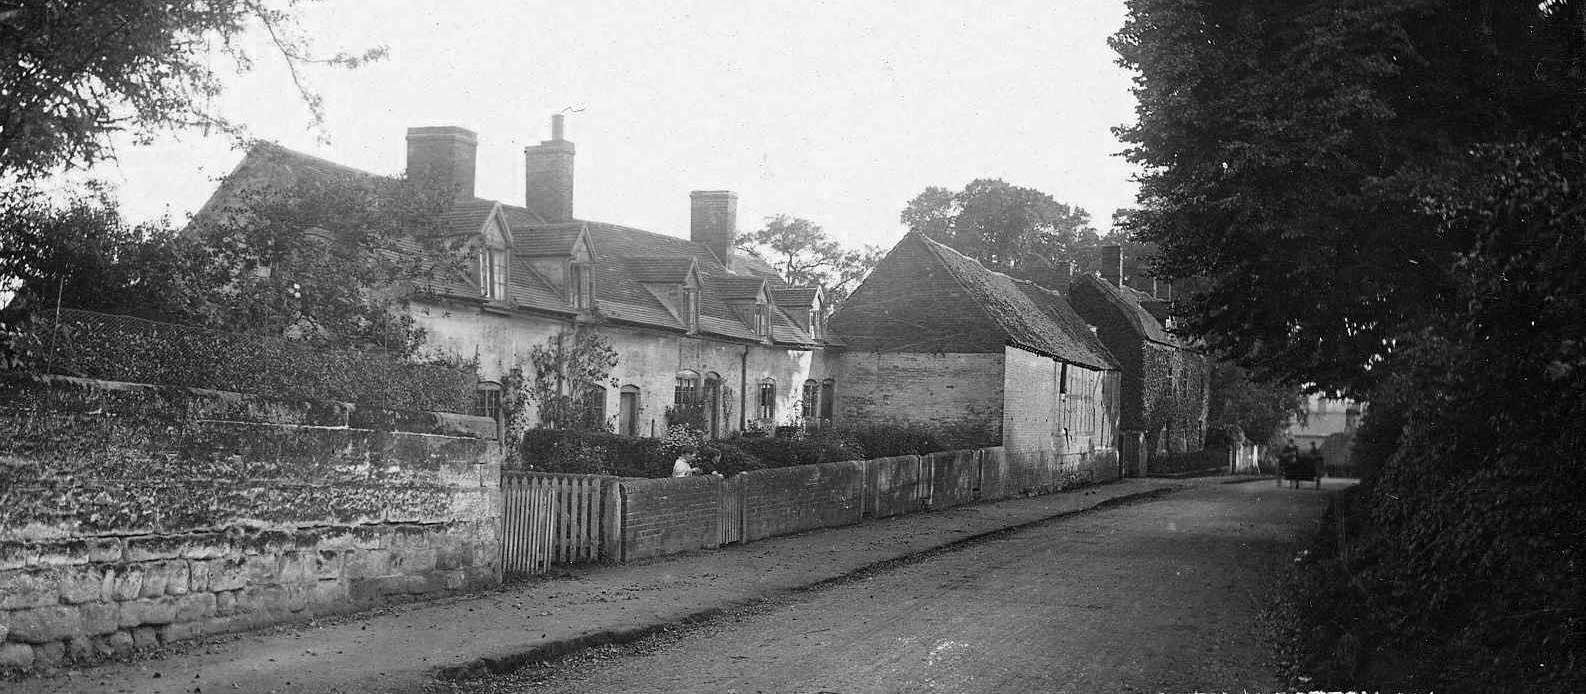 Elms Farm Cottages (demolished)